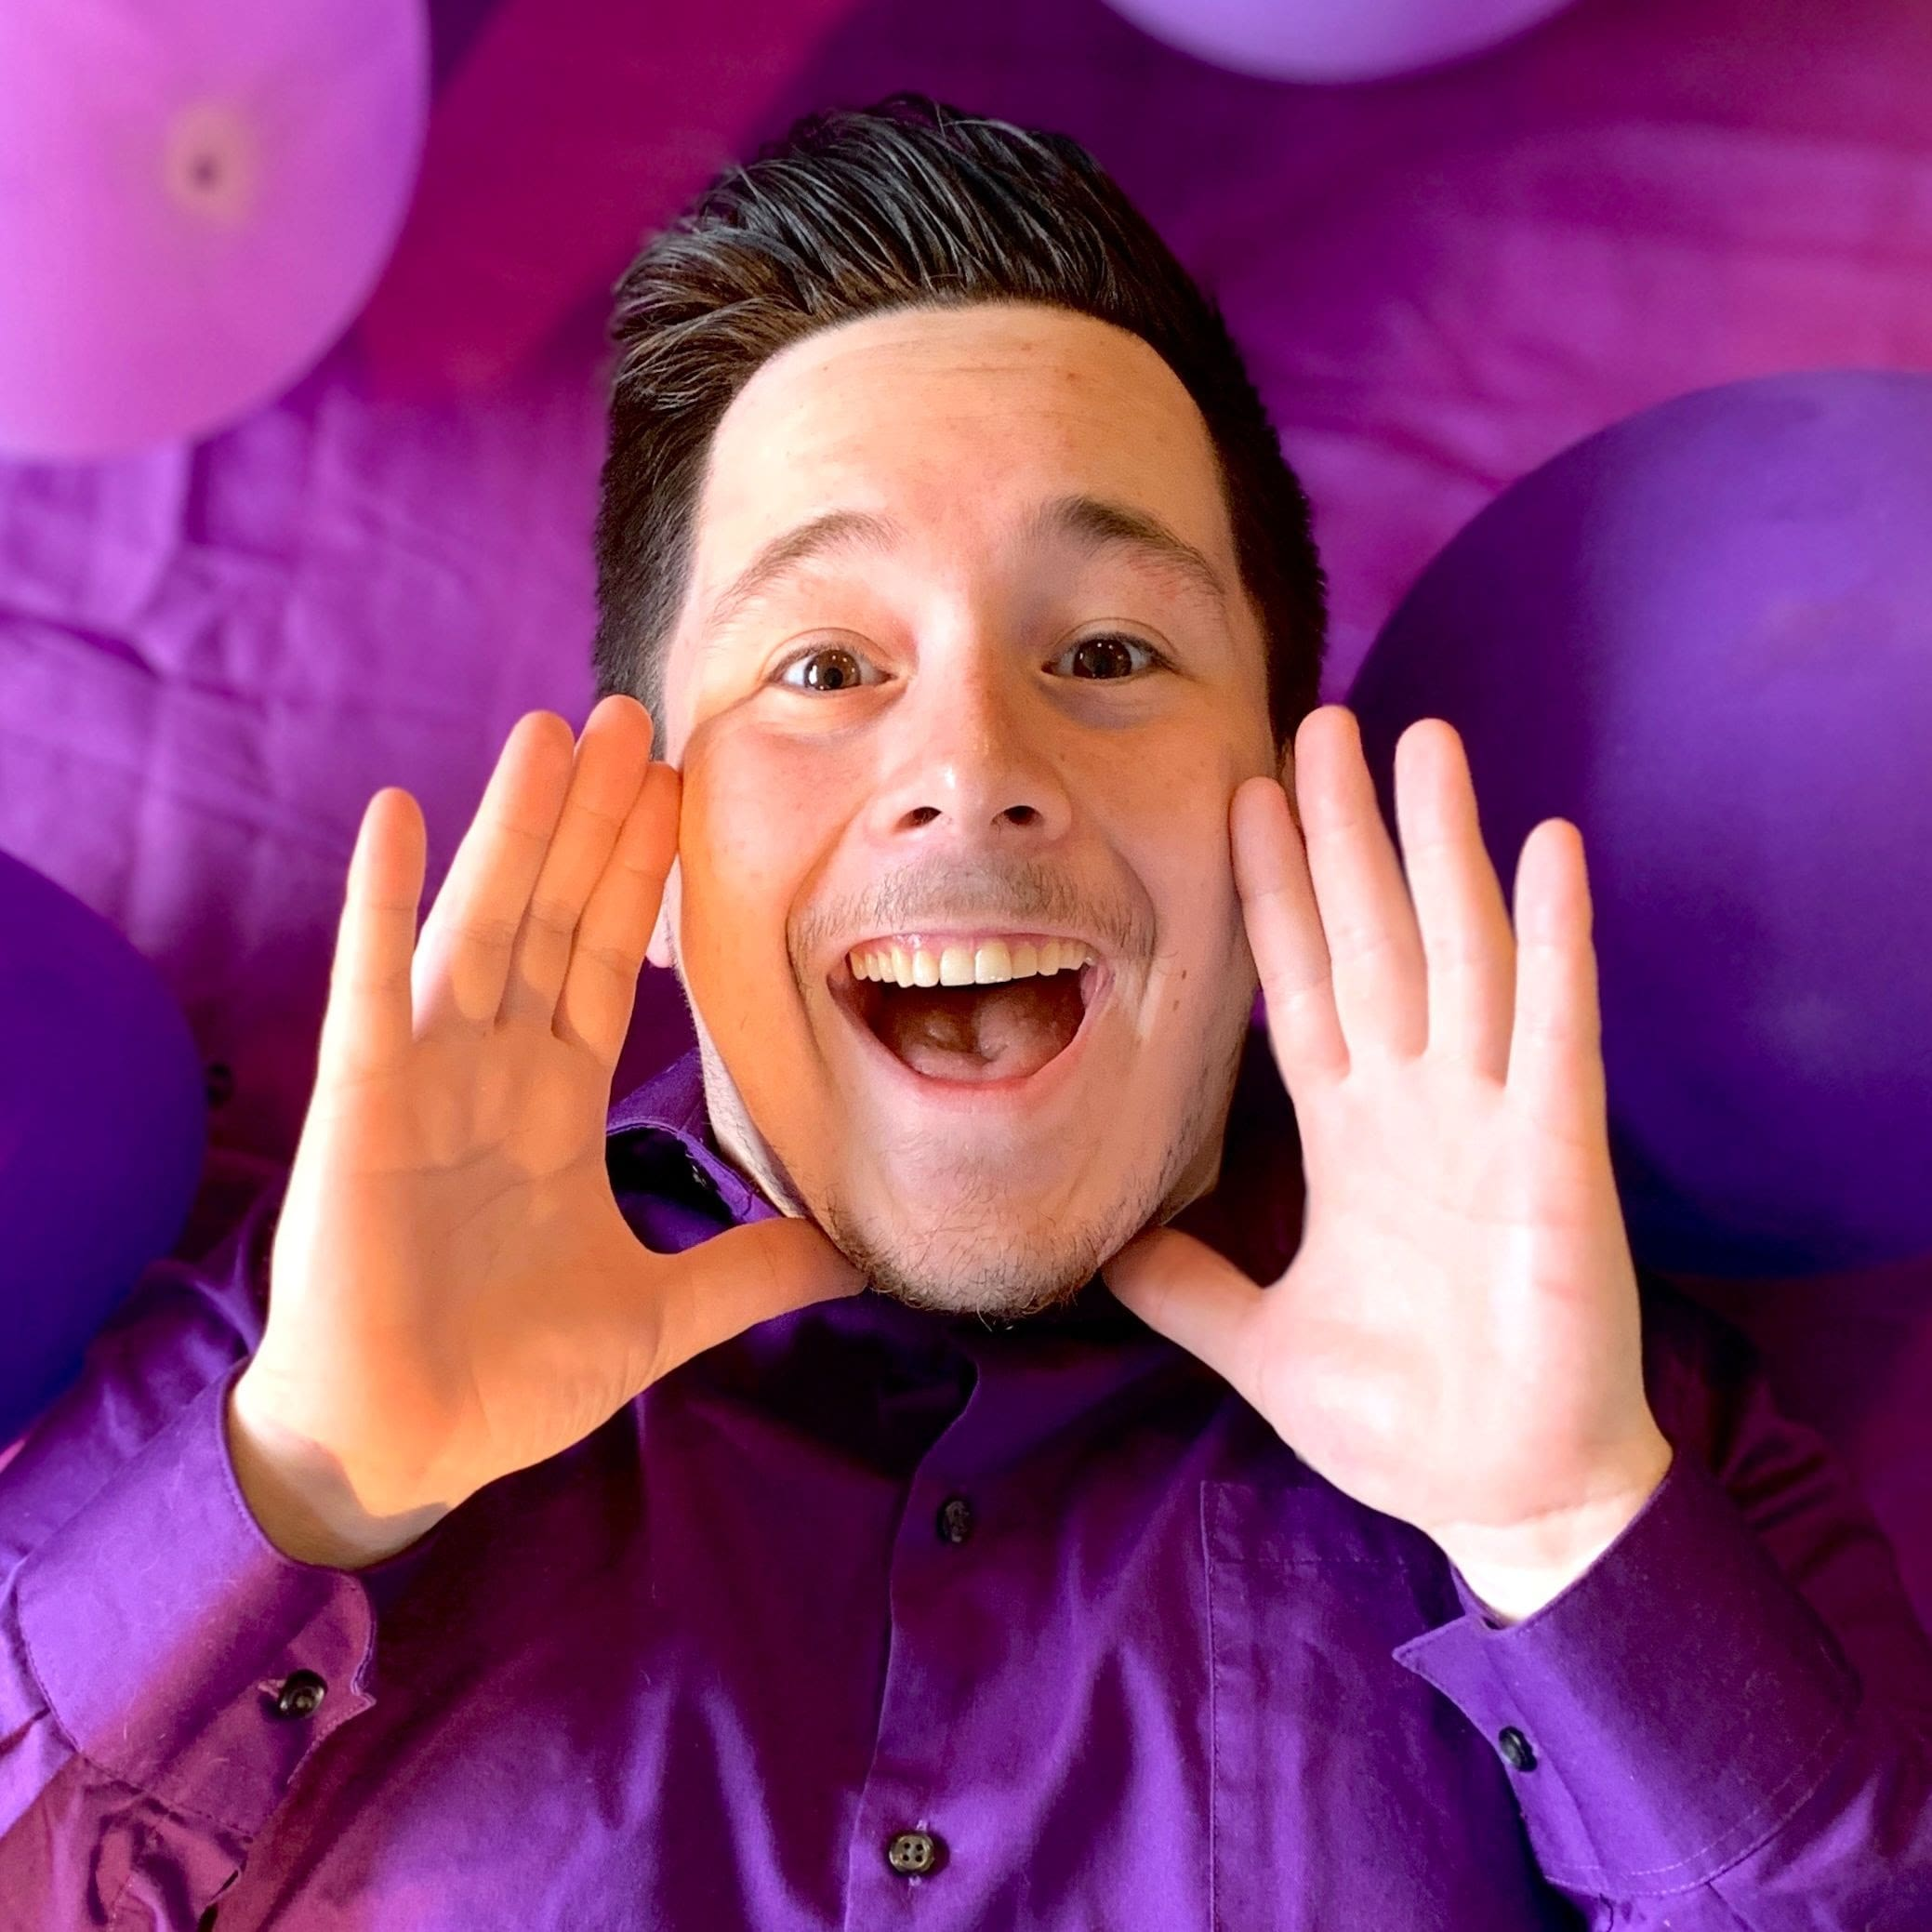 Smiling man in purple, surrounded by purple balloons, frames his face with his hands